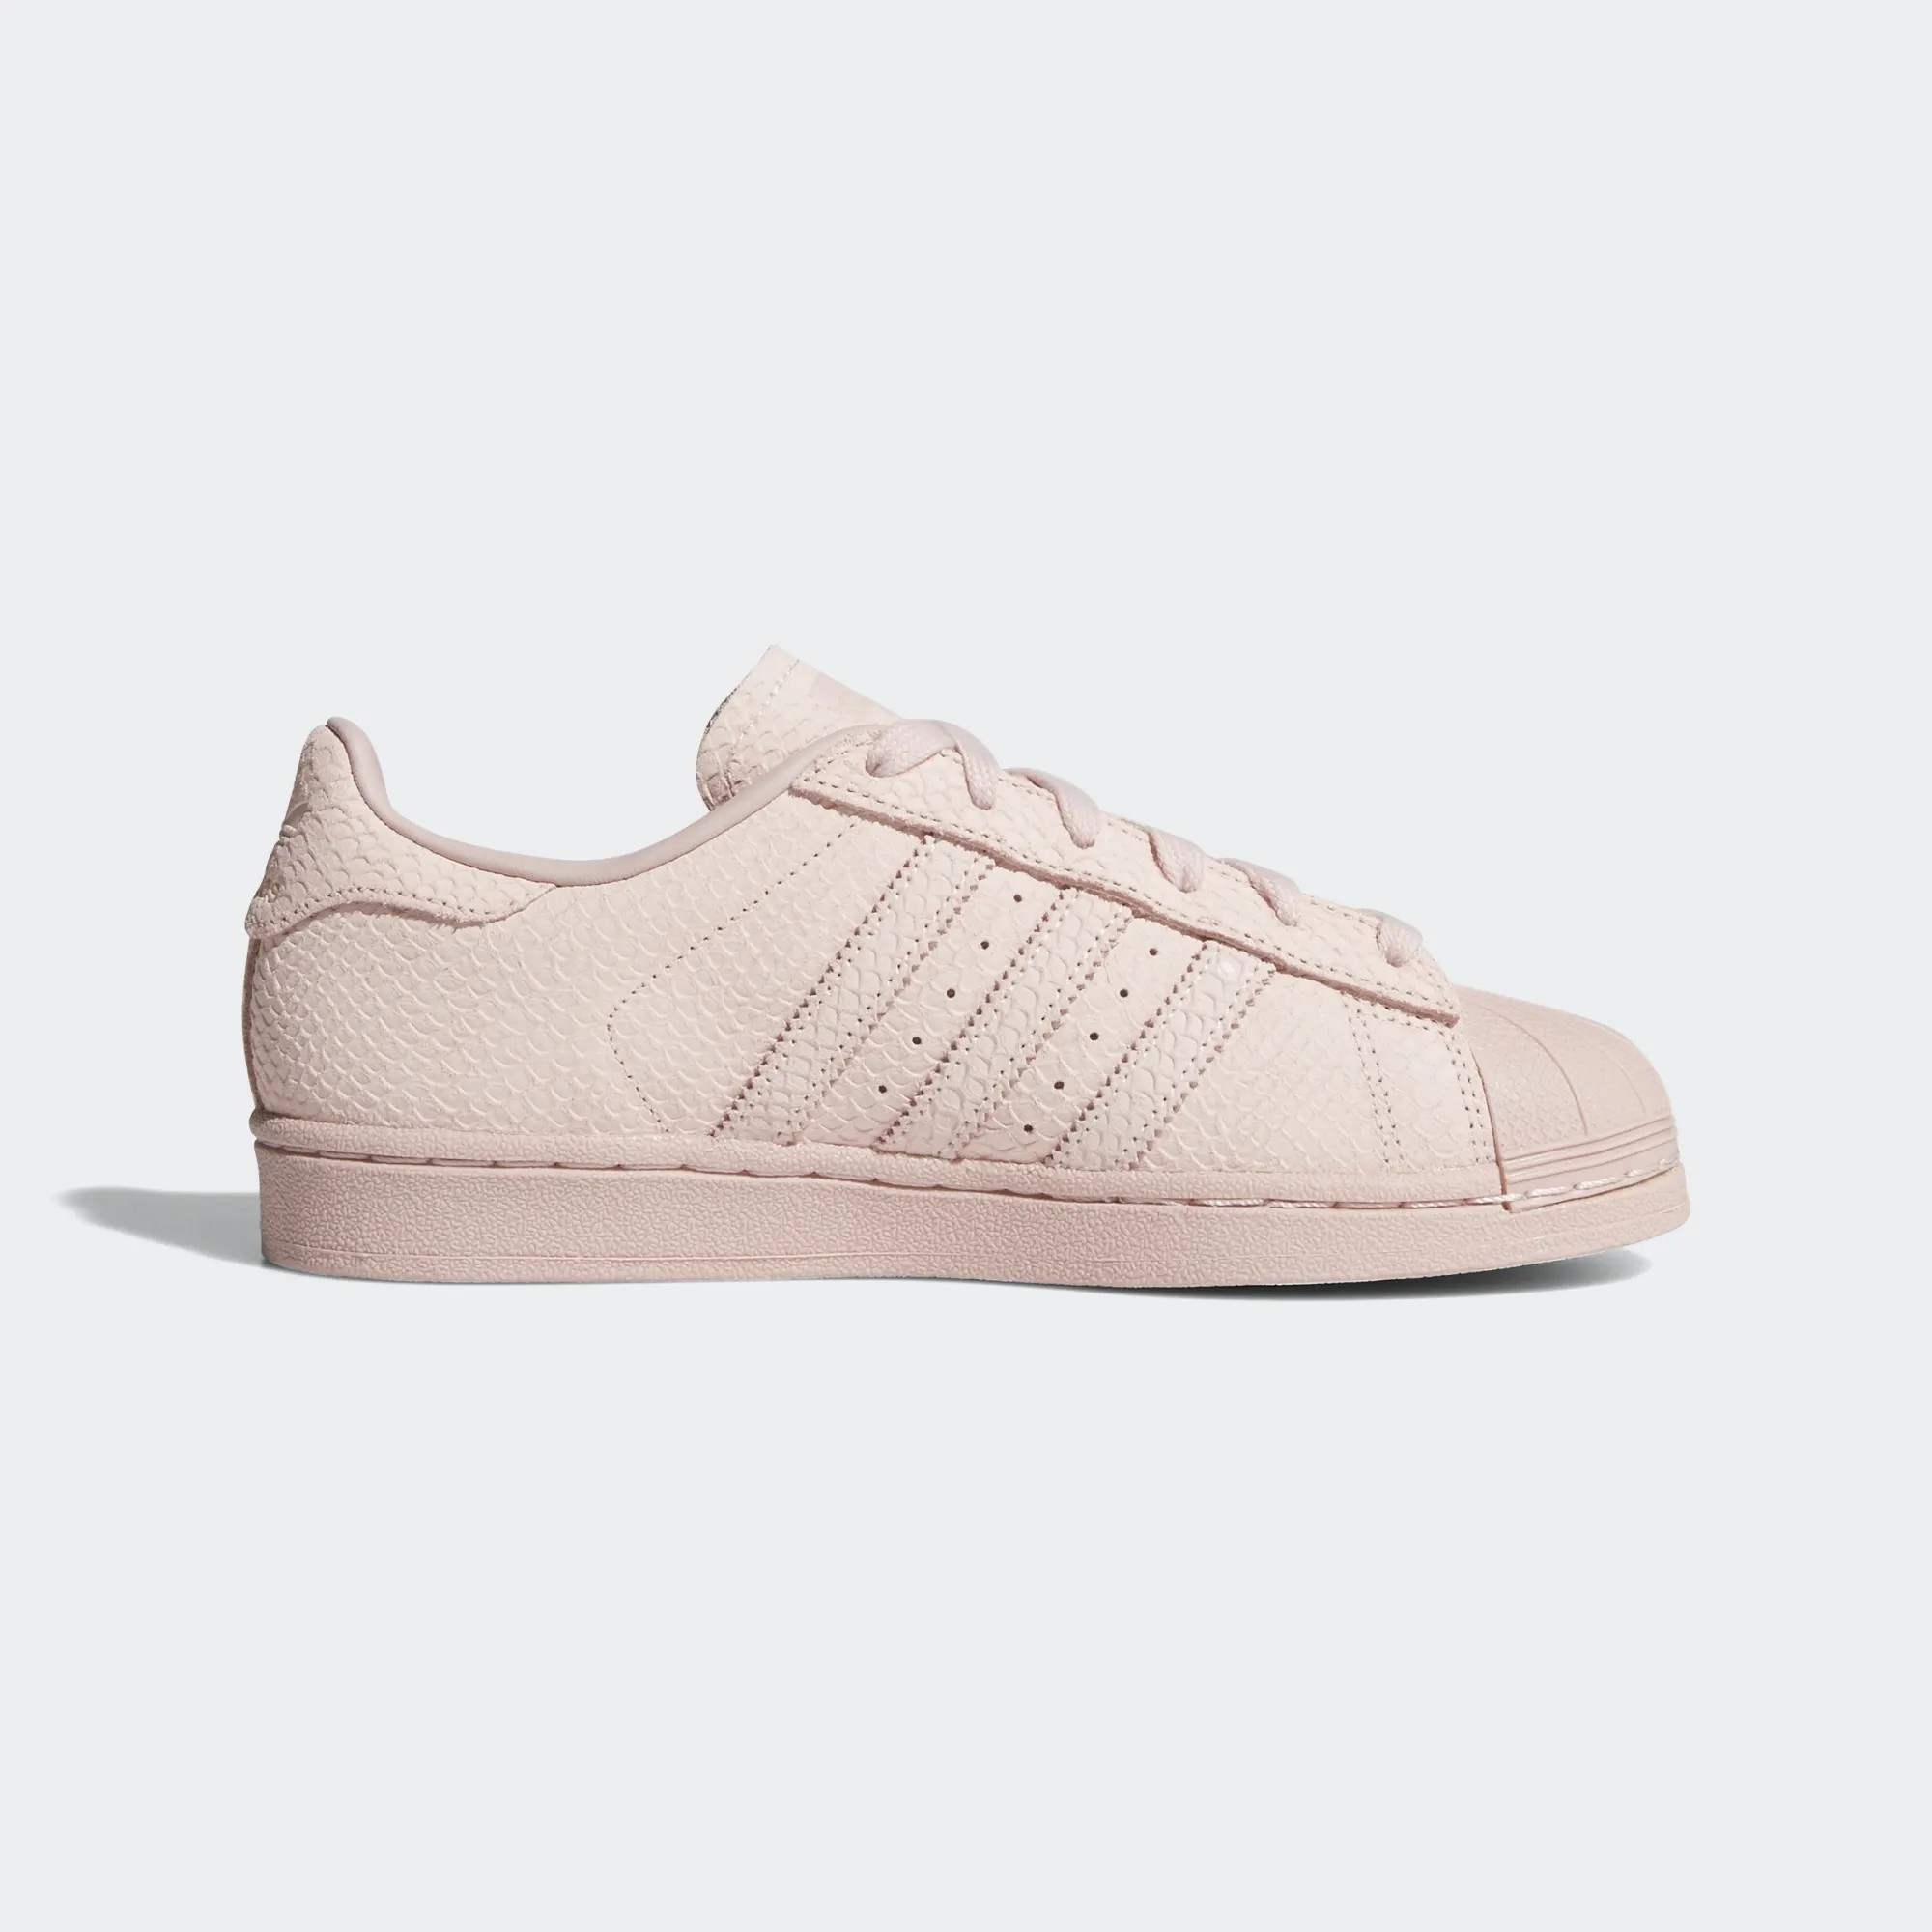 adidas Originals Superstar Premium Icey Pink/Silver Metallic B41506